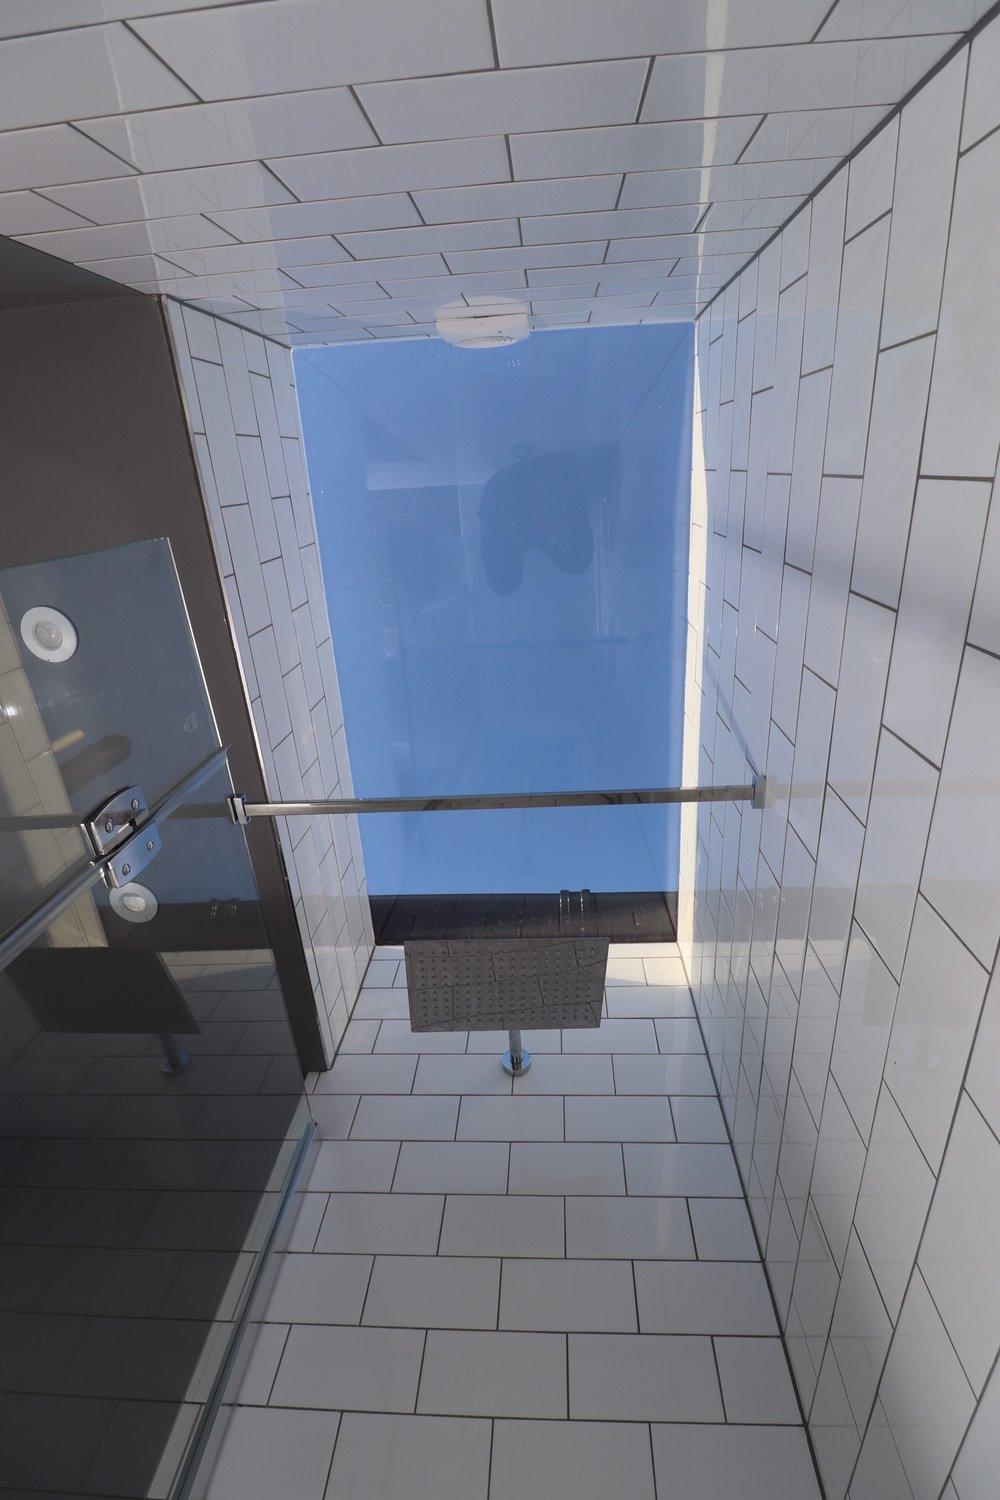 SHOWER, SKYLIGHT, BATHROOM SKY LIGHT, INVISIBLE CEILING.JPG